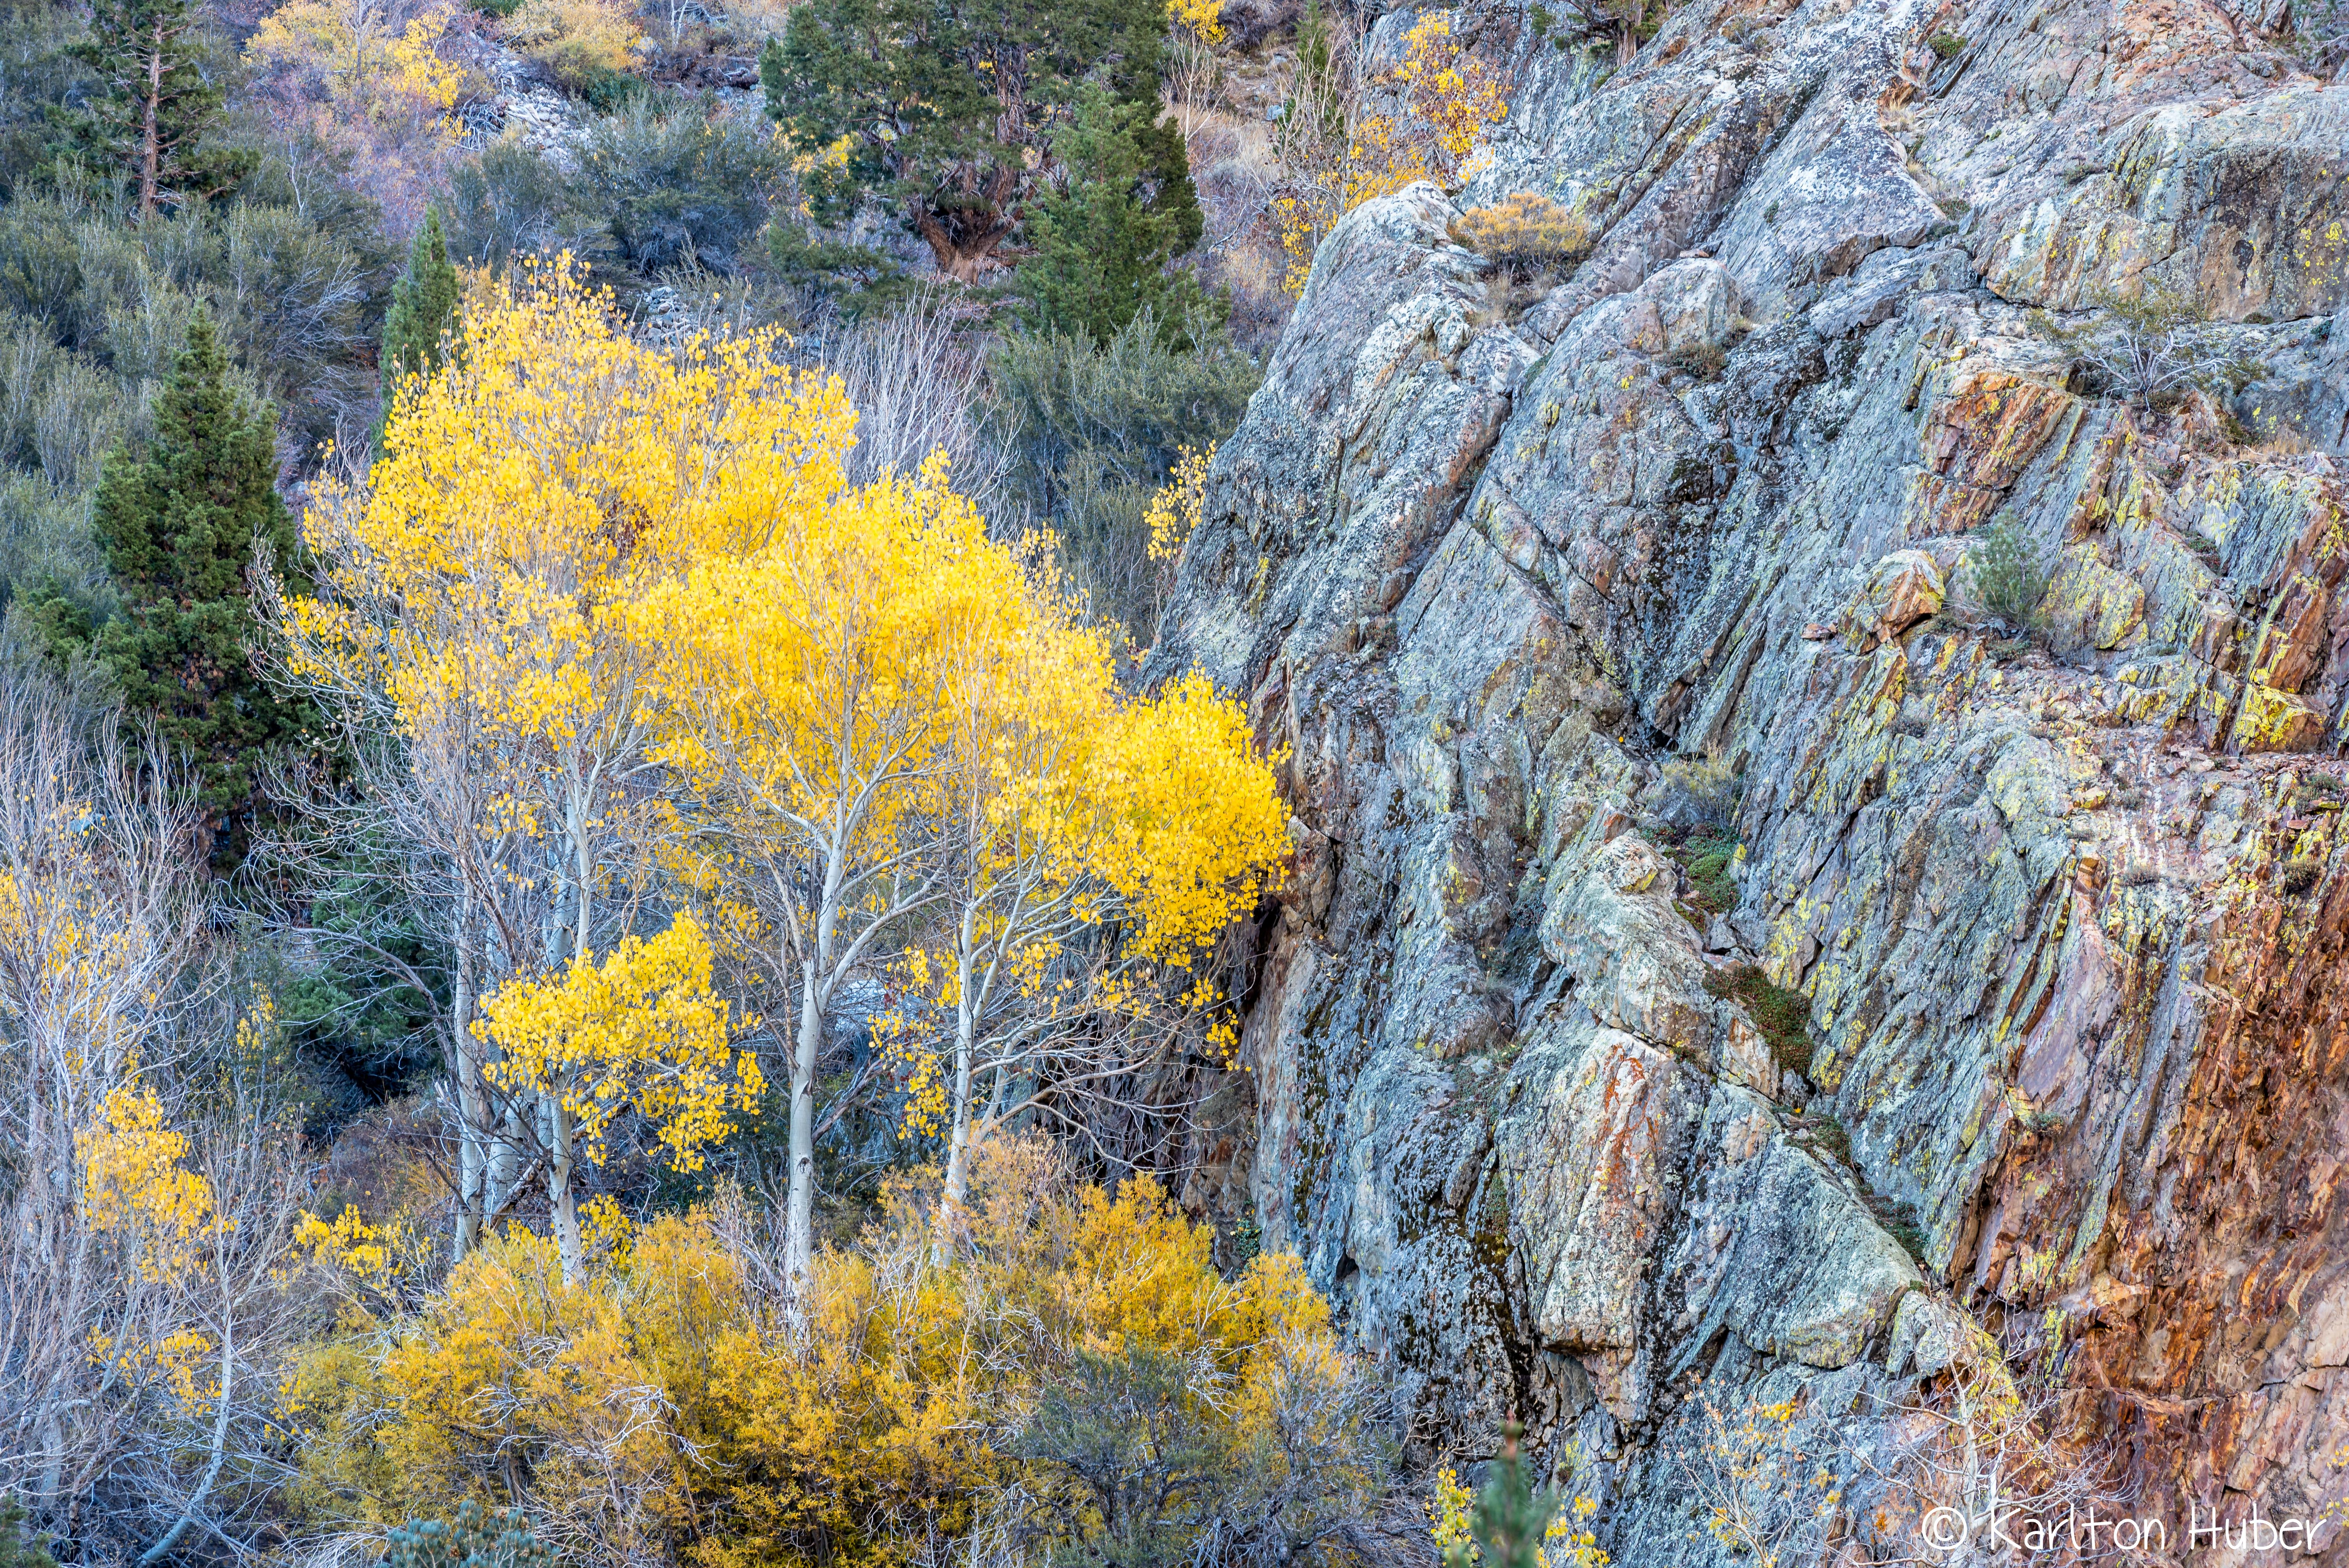 Fall Colors - Tall Aspens, Rugged Terrain